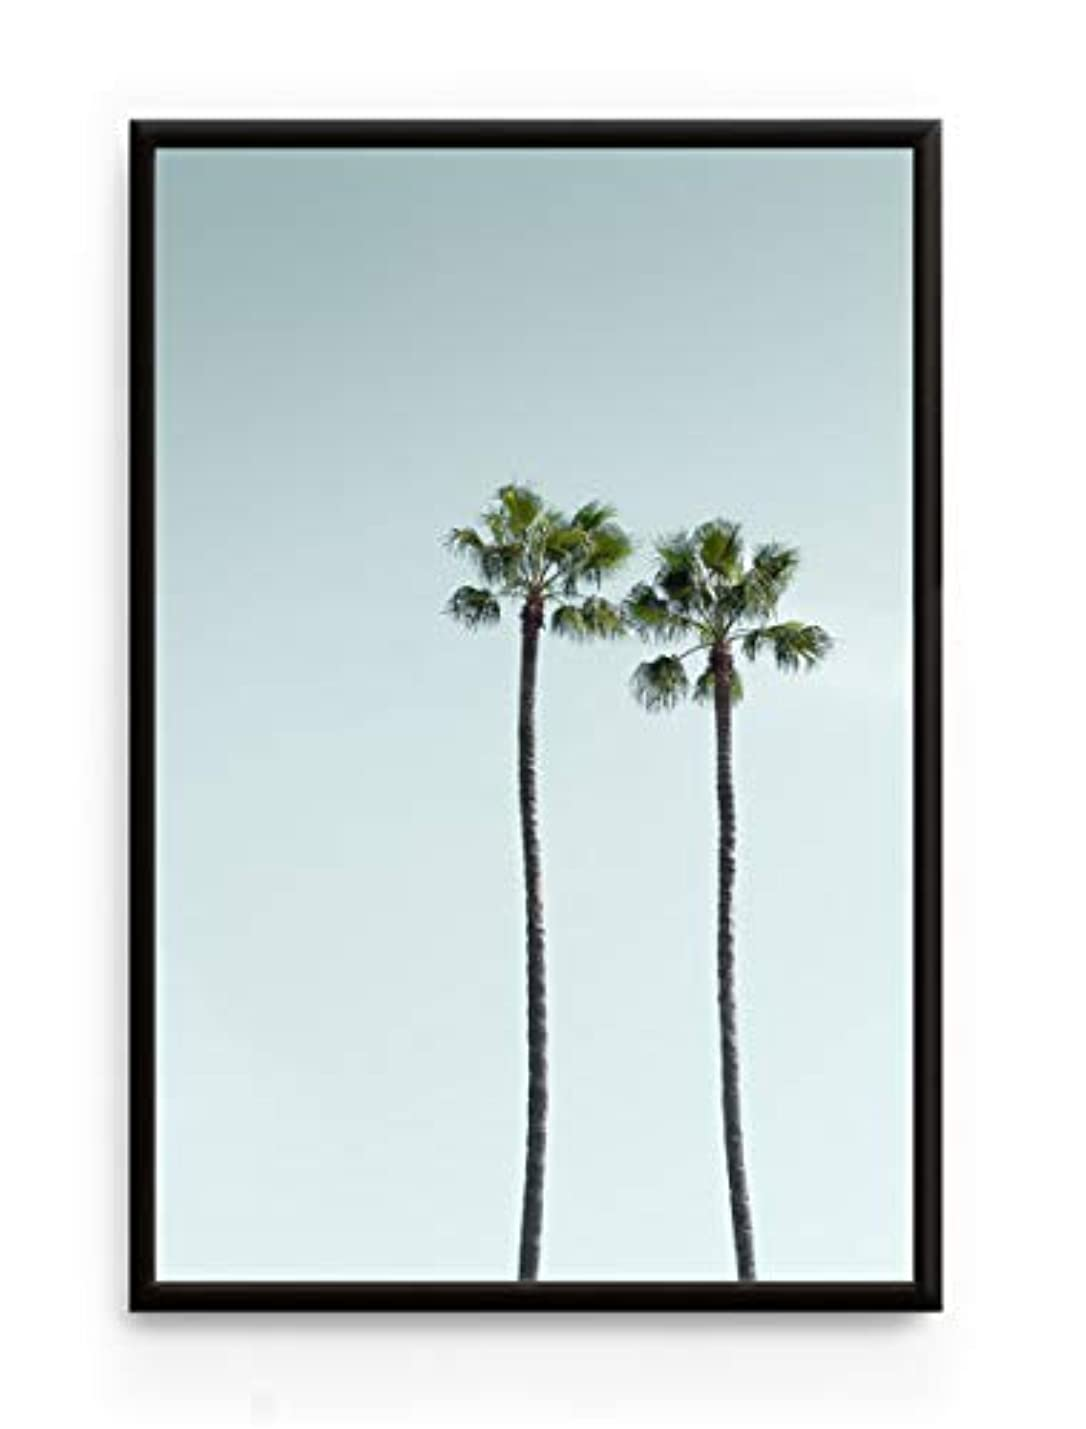 Los Angeles Palm Trees, Black Satin Aluminium Frame, with Mount, Multicolored, 20x30 lkmklvxgbtrjw895